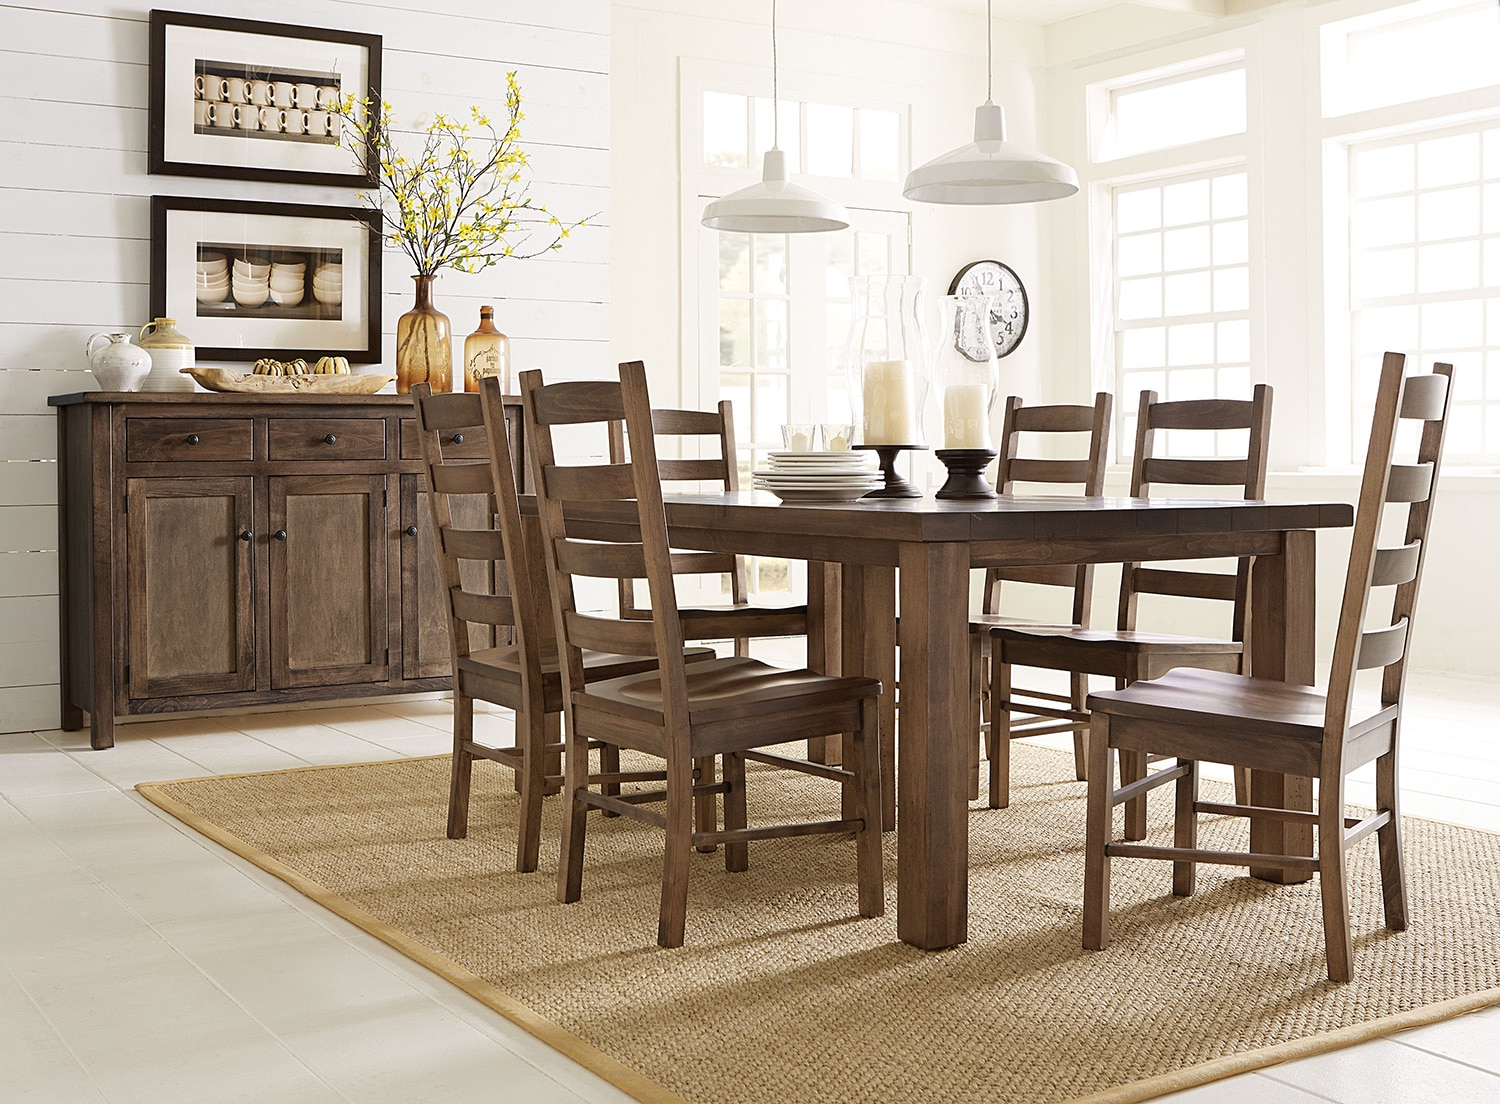 Dining Room Furniture - Westchester Table and 4 Side Chairs - Sandalwood